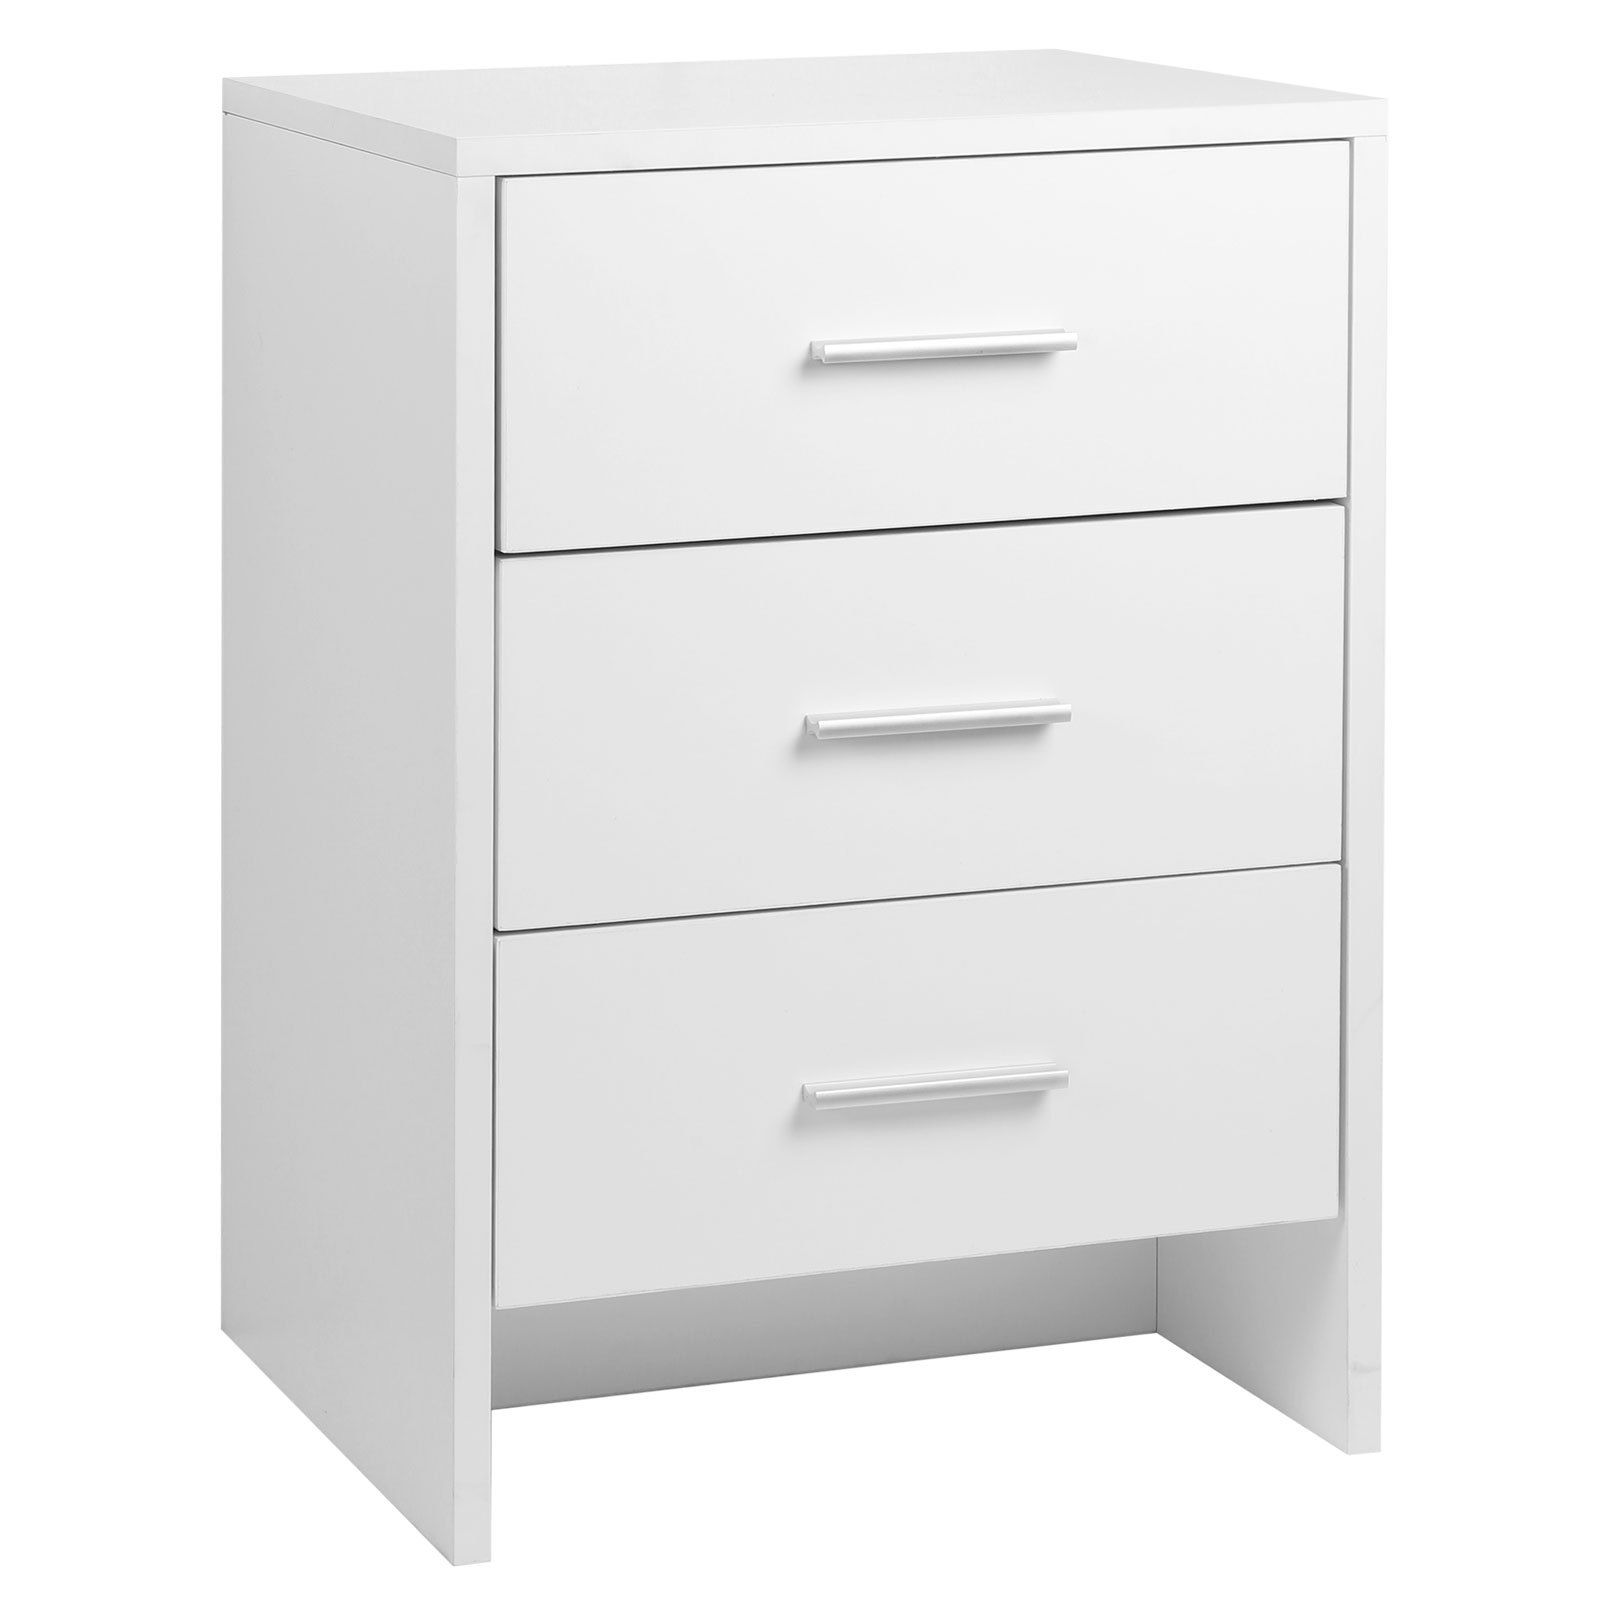 nightstand/bedside table/drawer cabinet